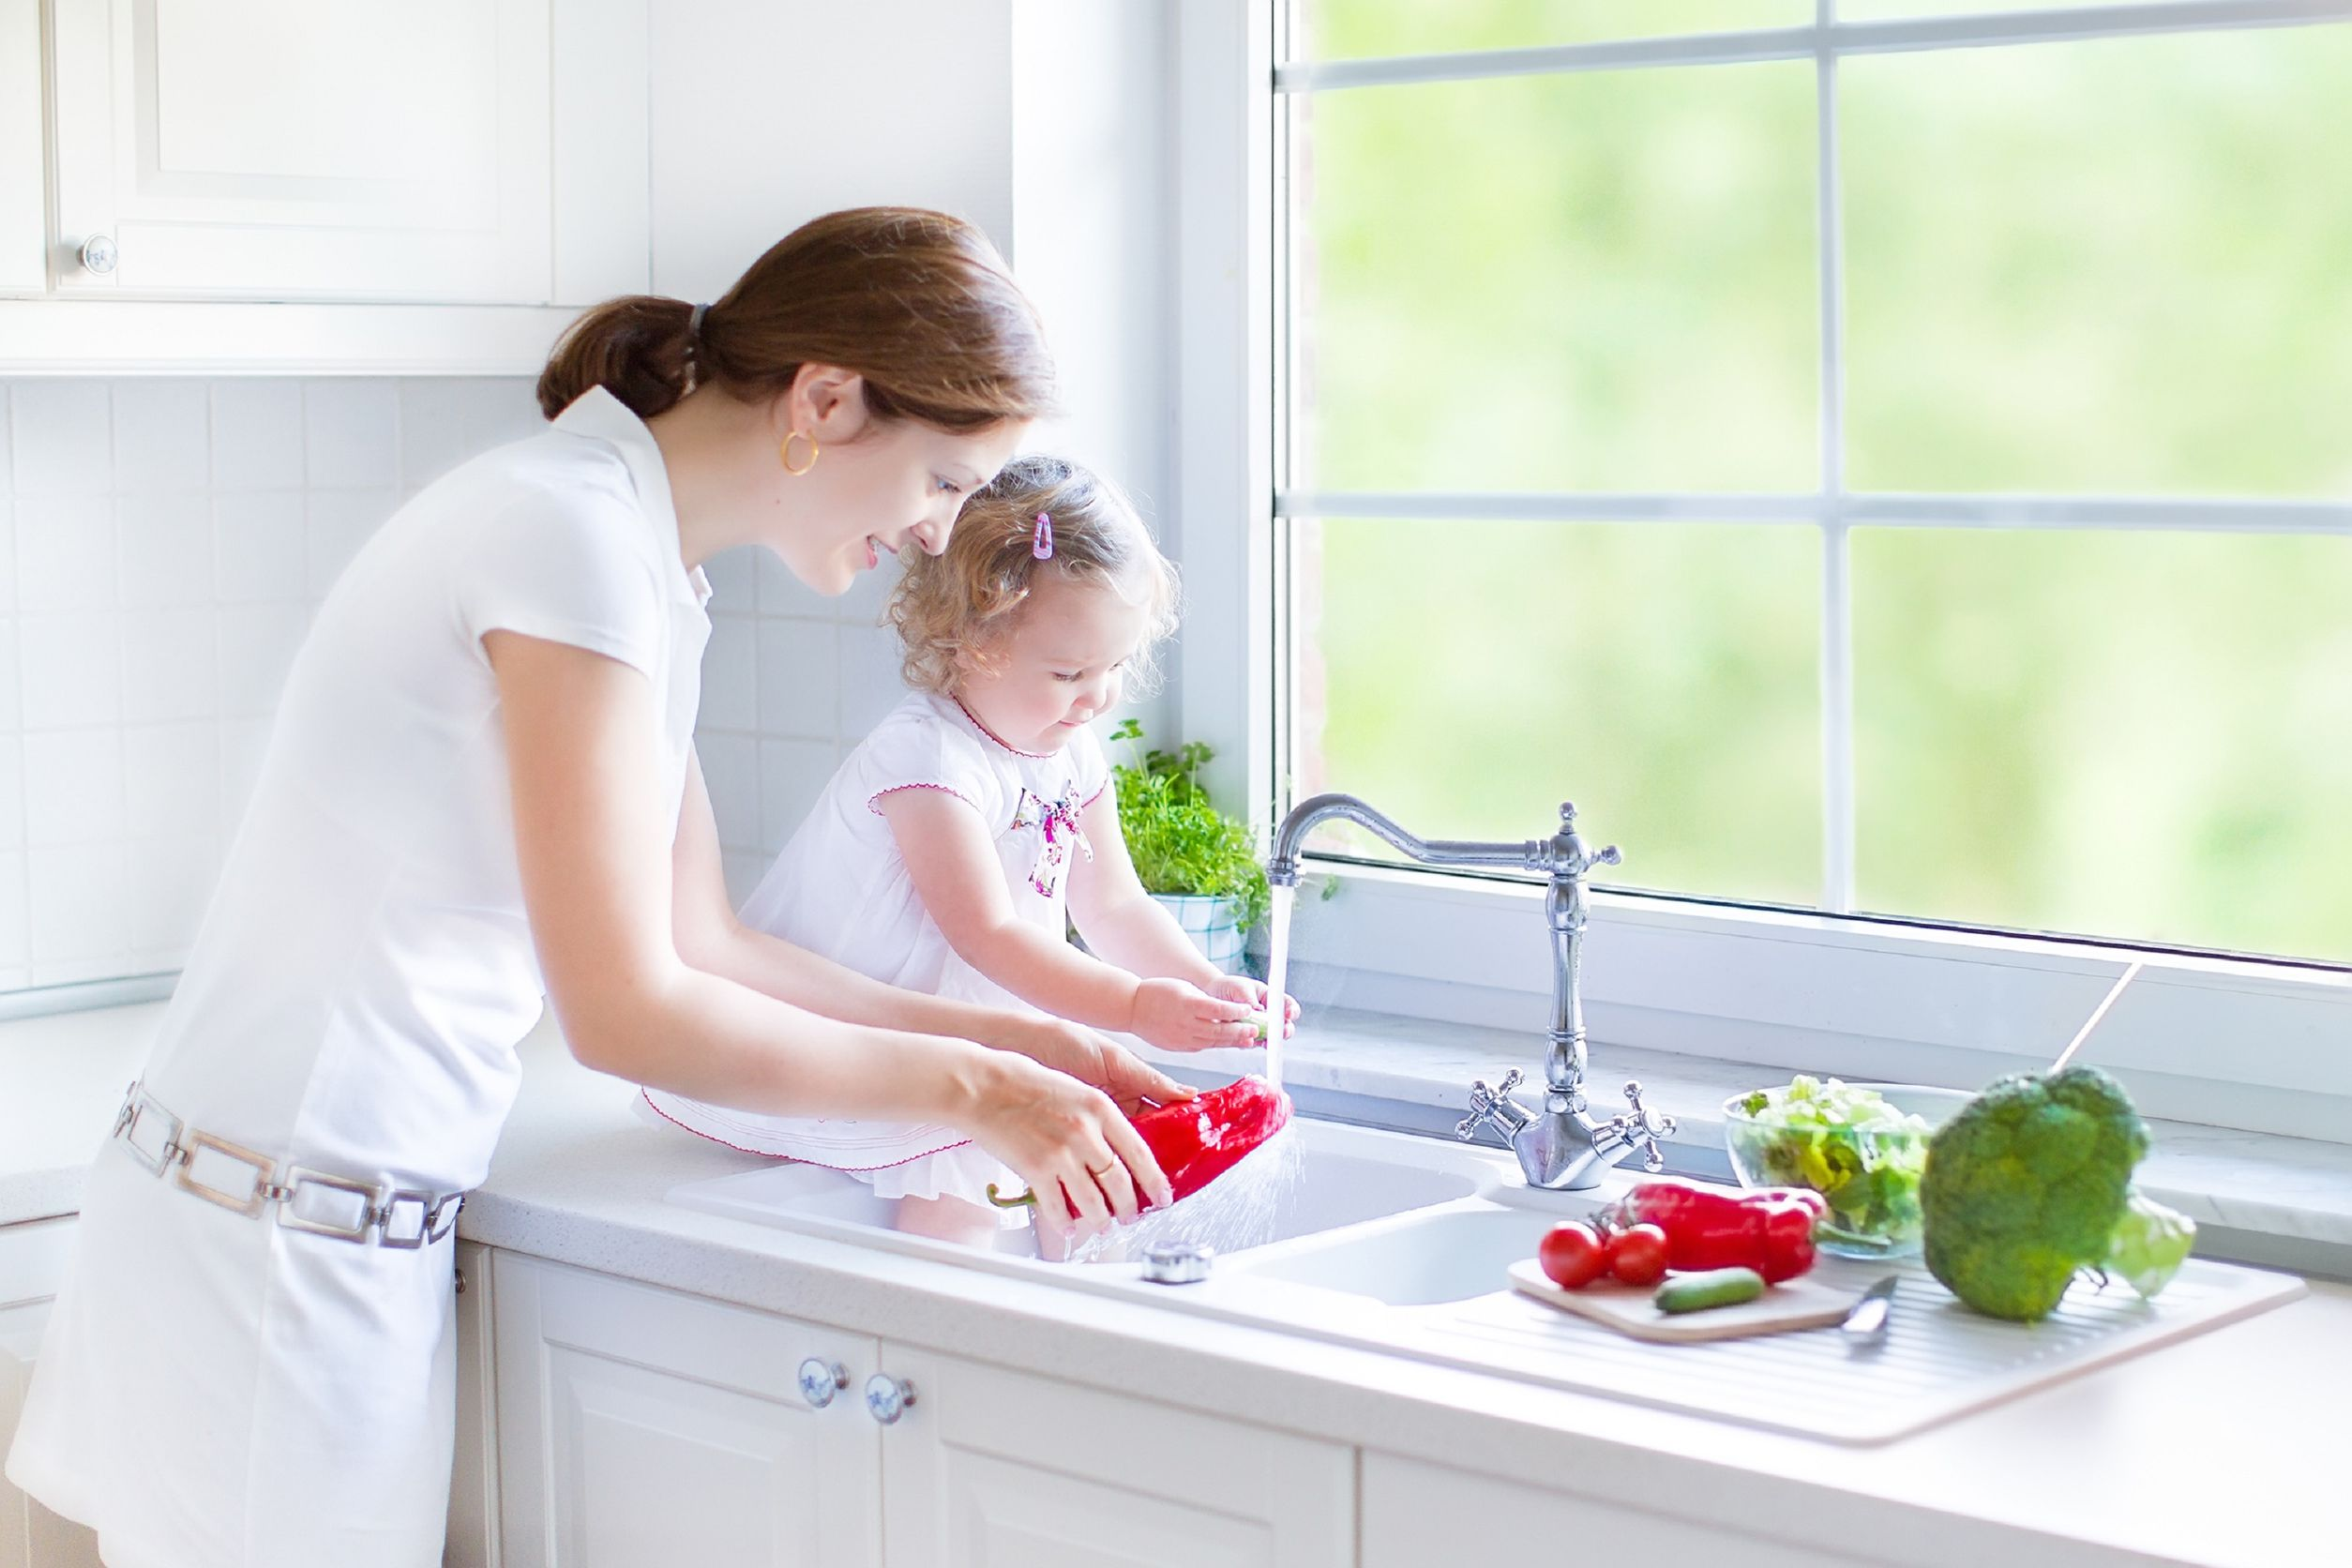 mom-and-daughter-washing-food.jpg